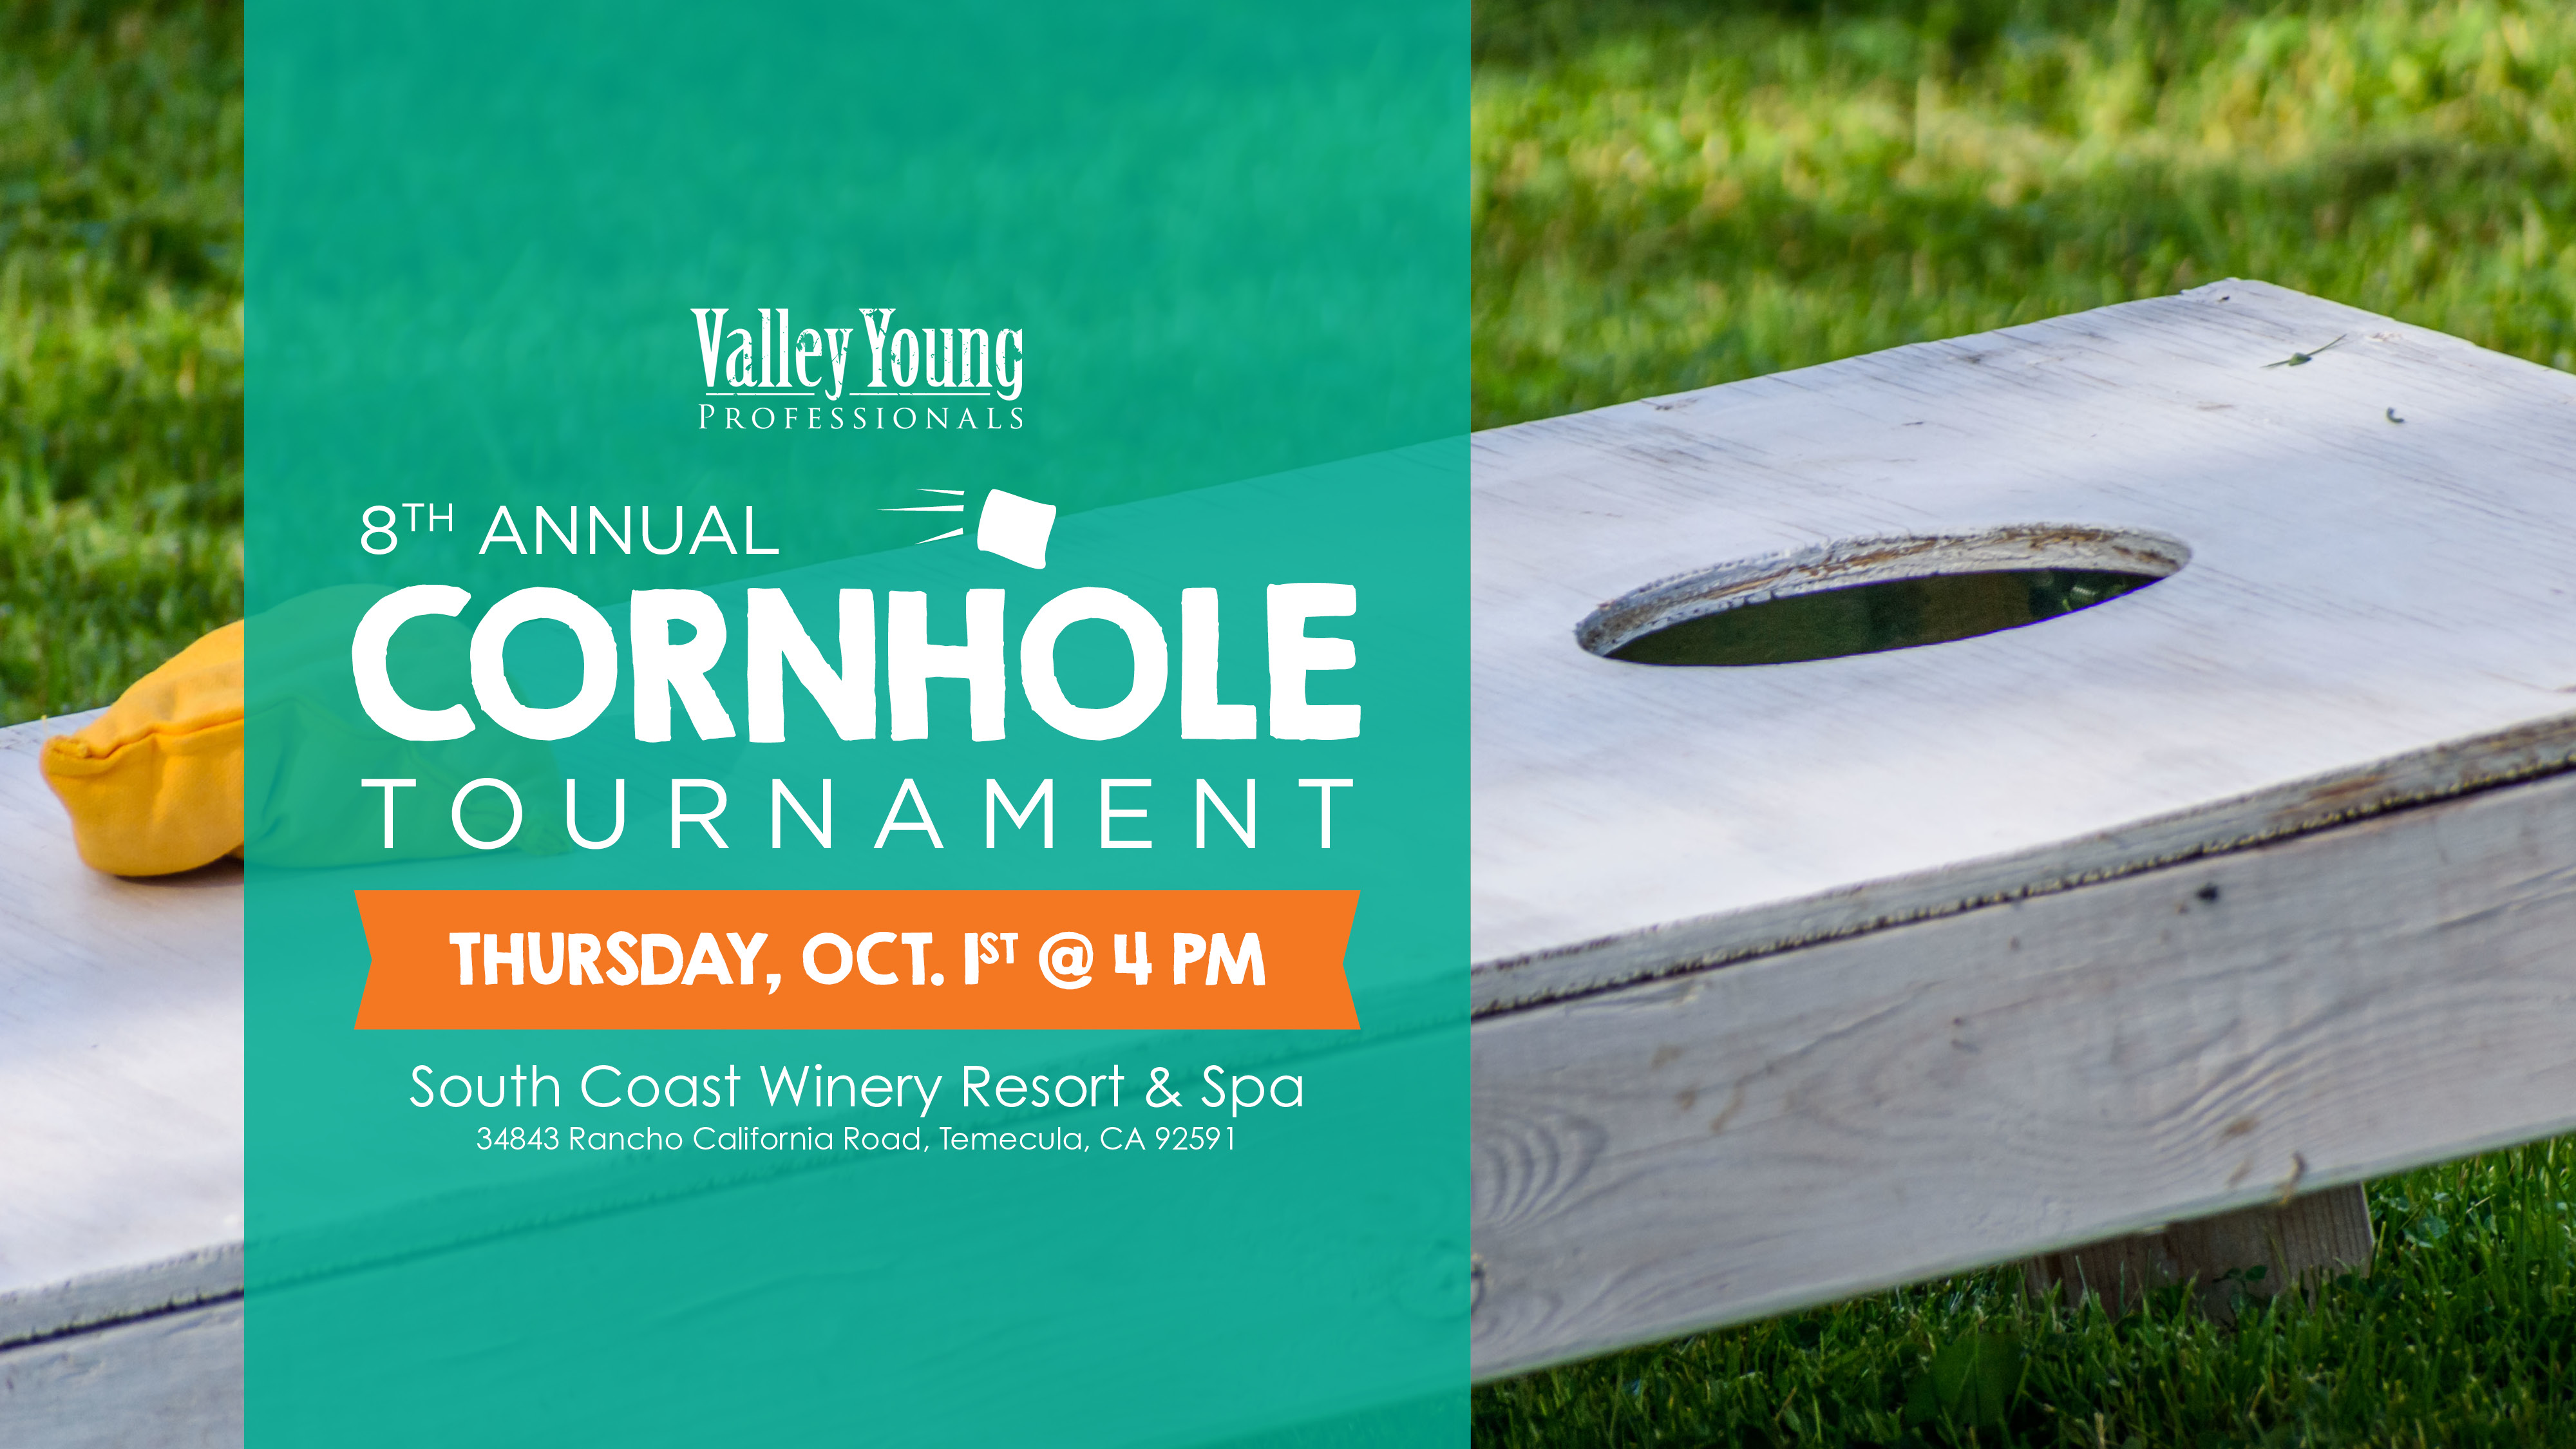 vyp_cornhole_event_cover REVISED